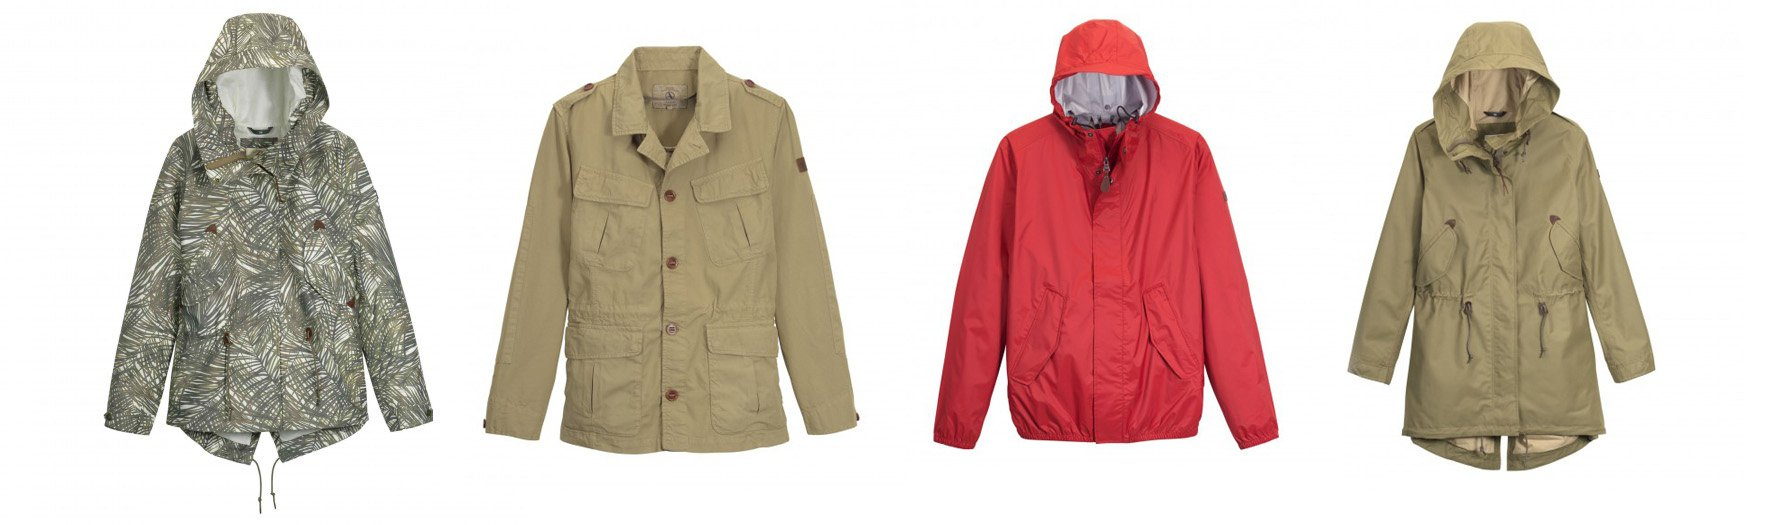 aigle waterproof coats and parkas for men and women